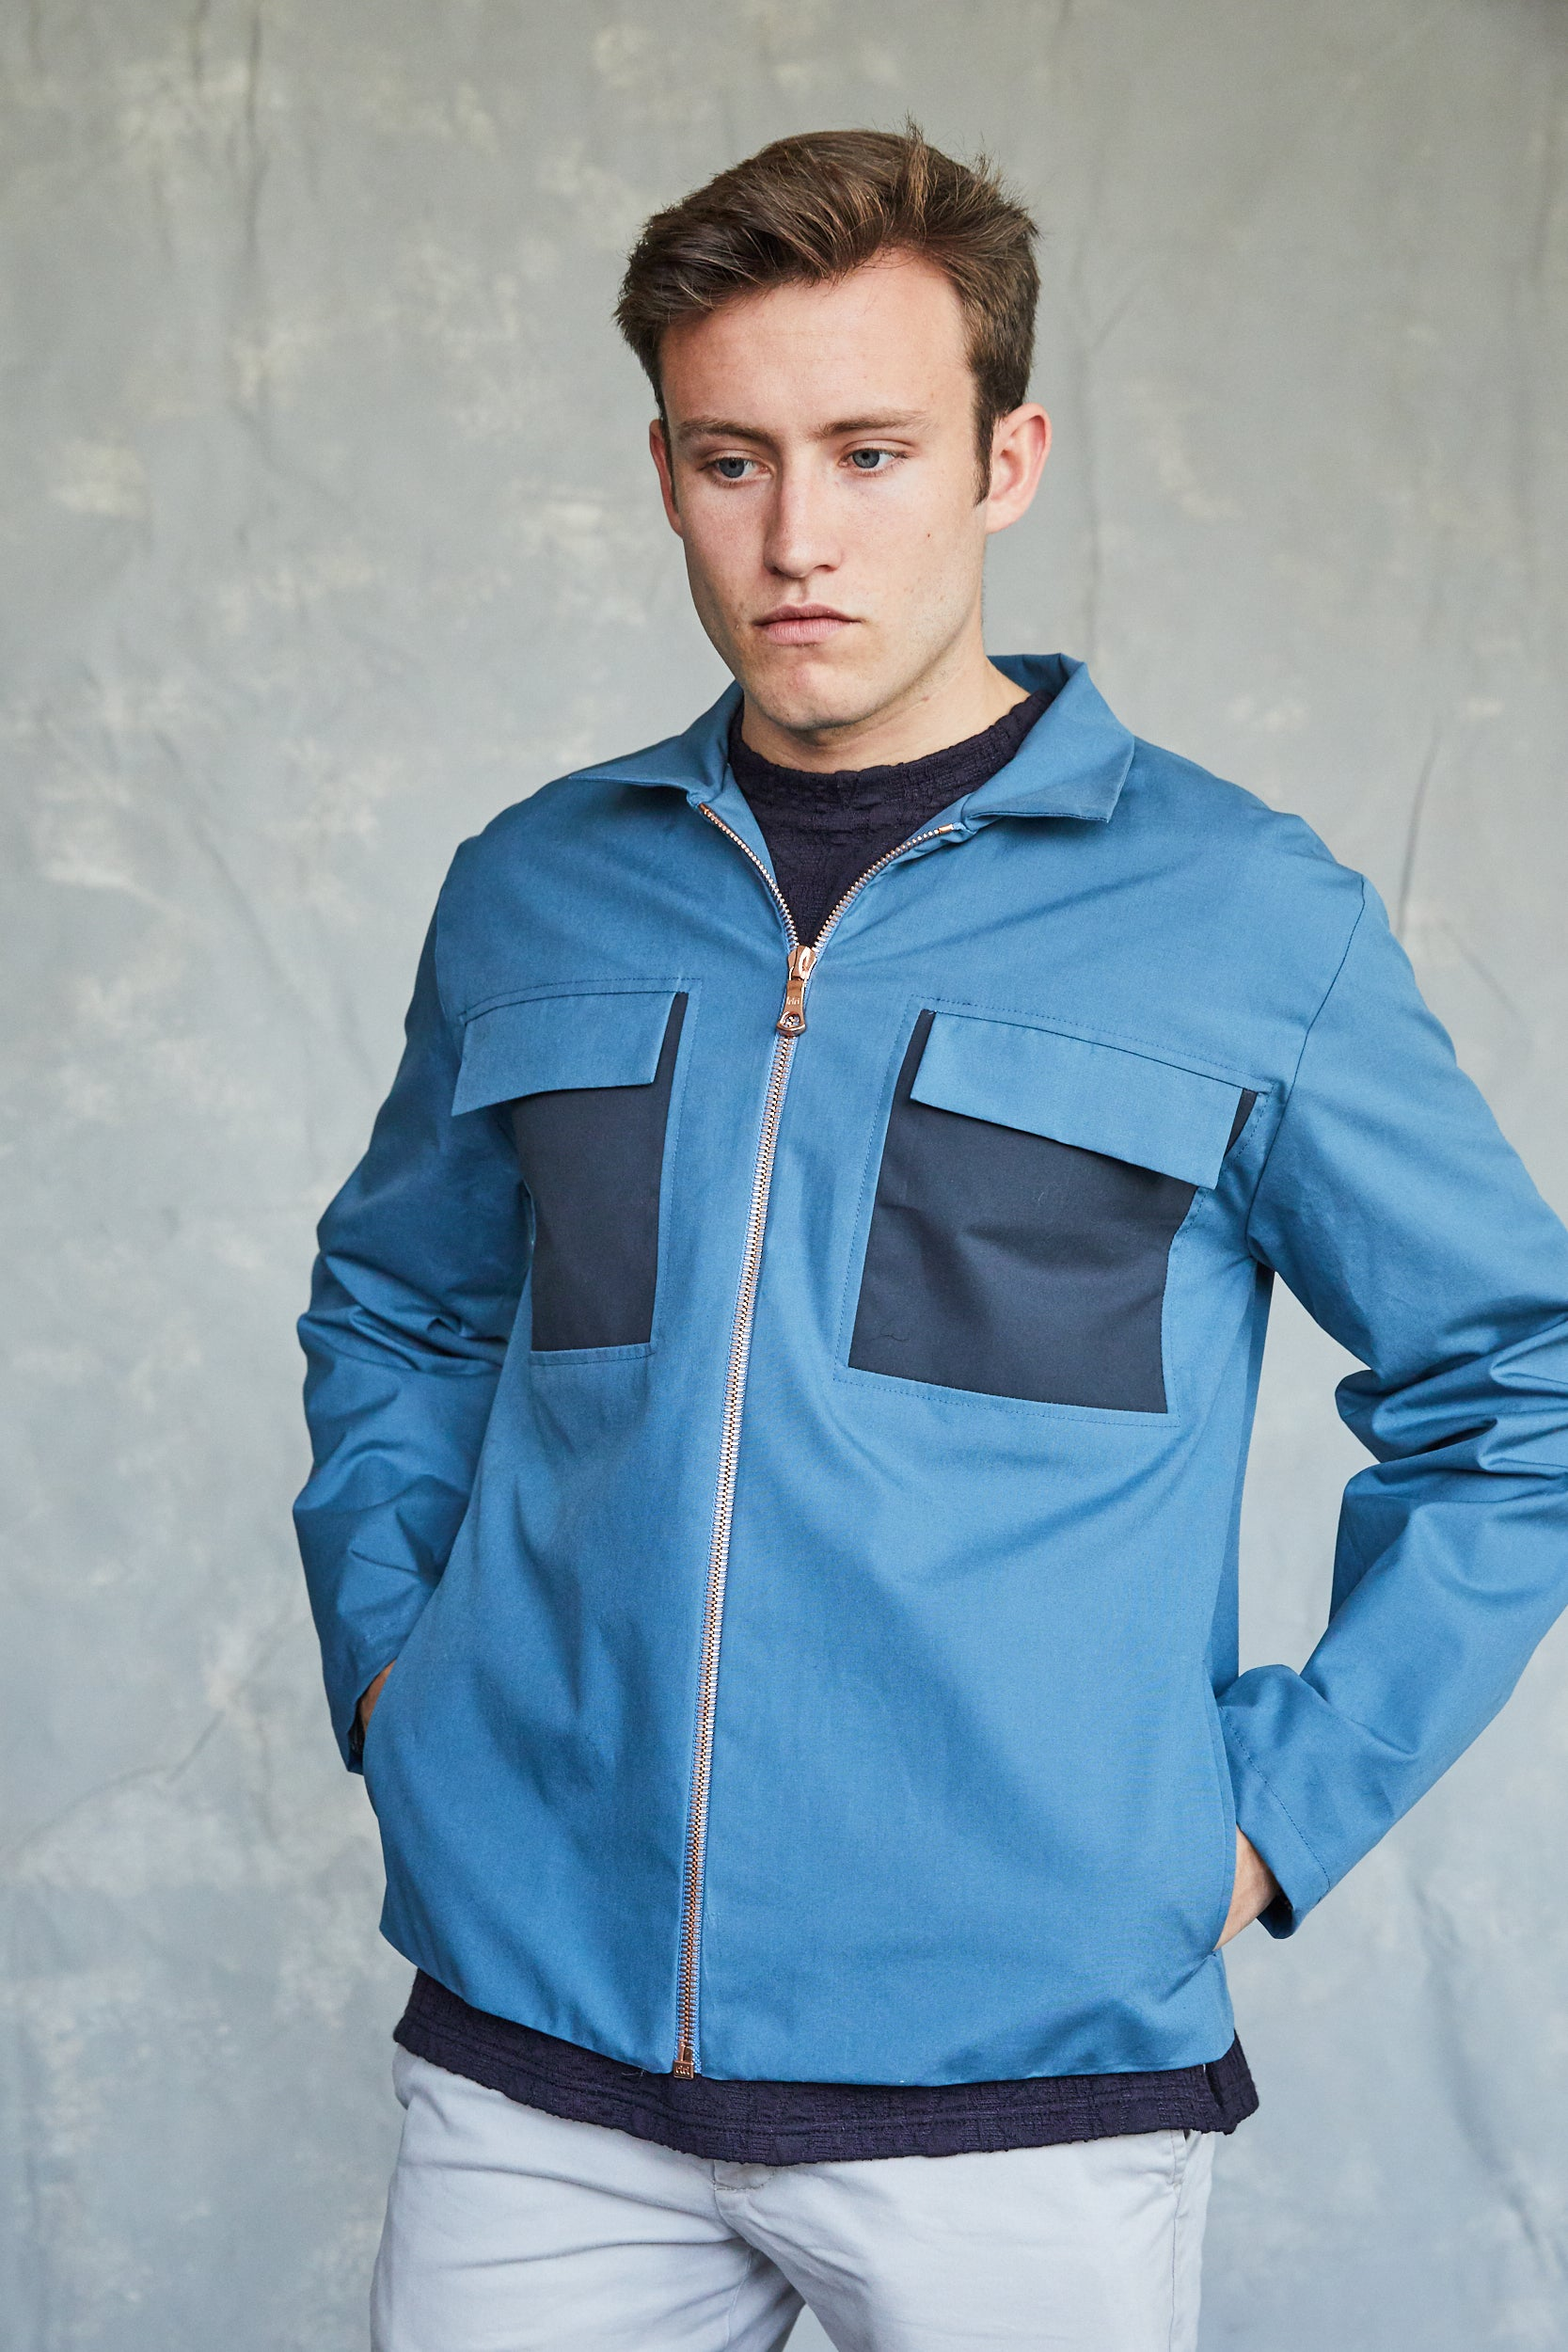 Waxed Zipper Coach Jacket - Blue